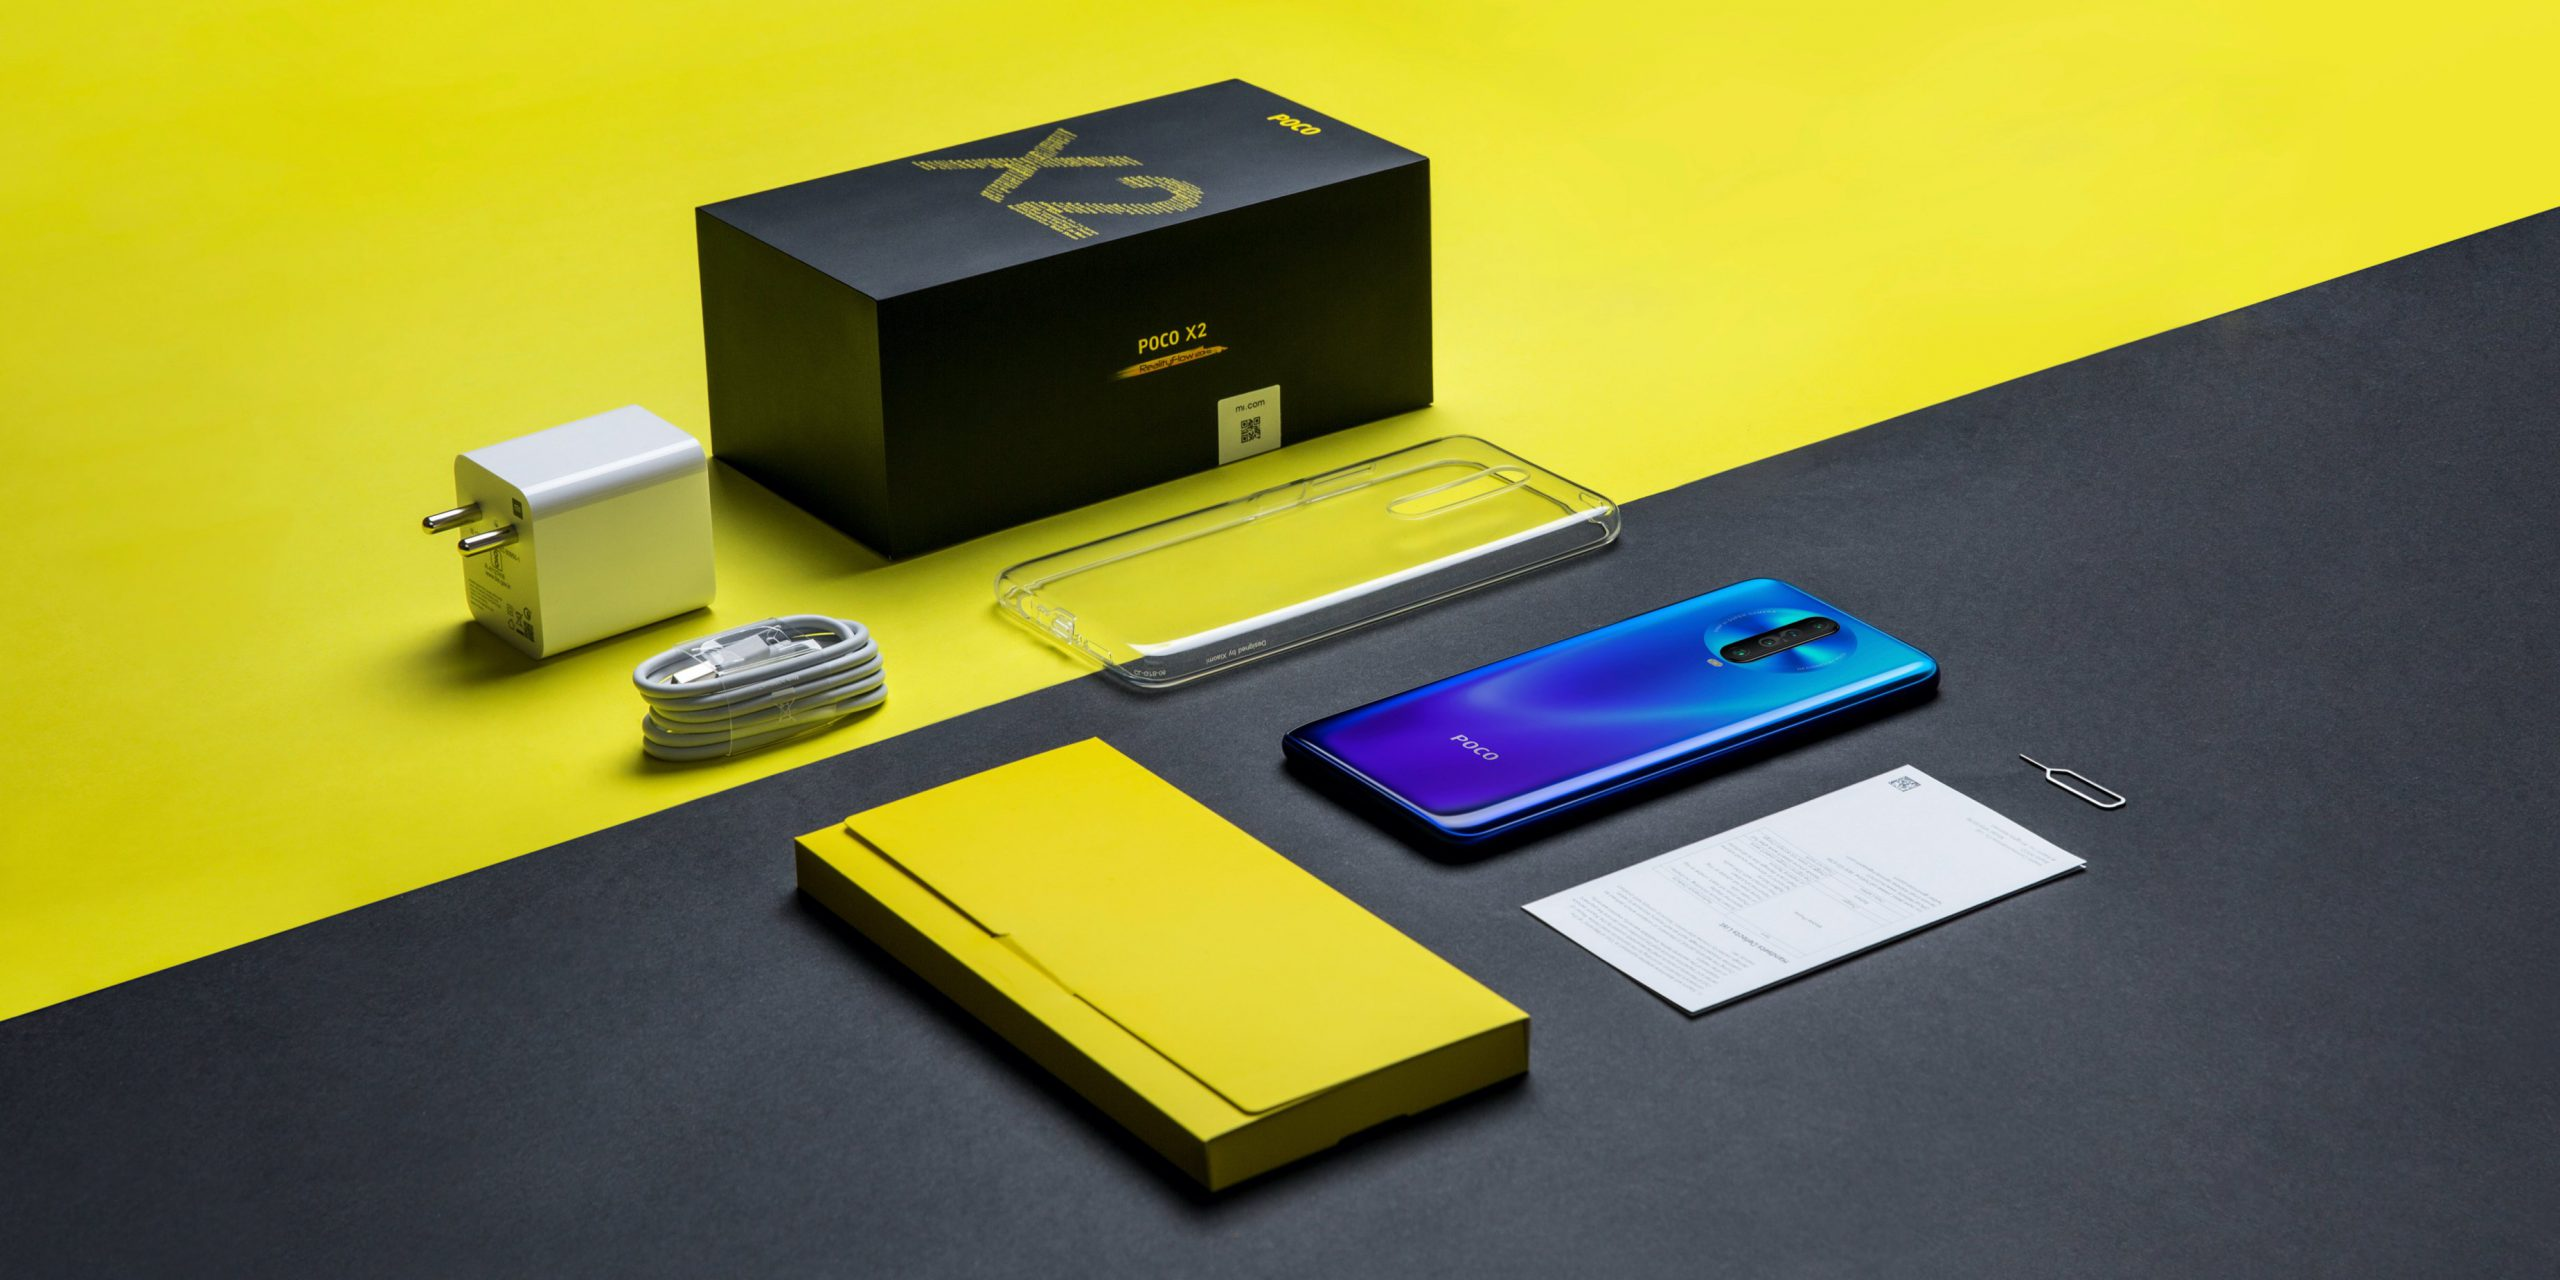 poco-x2-price-specs-release-date-philippines-official-unboxing